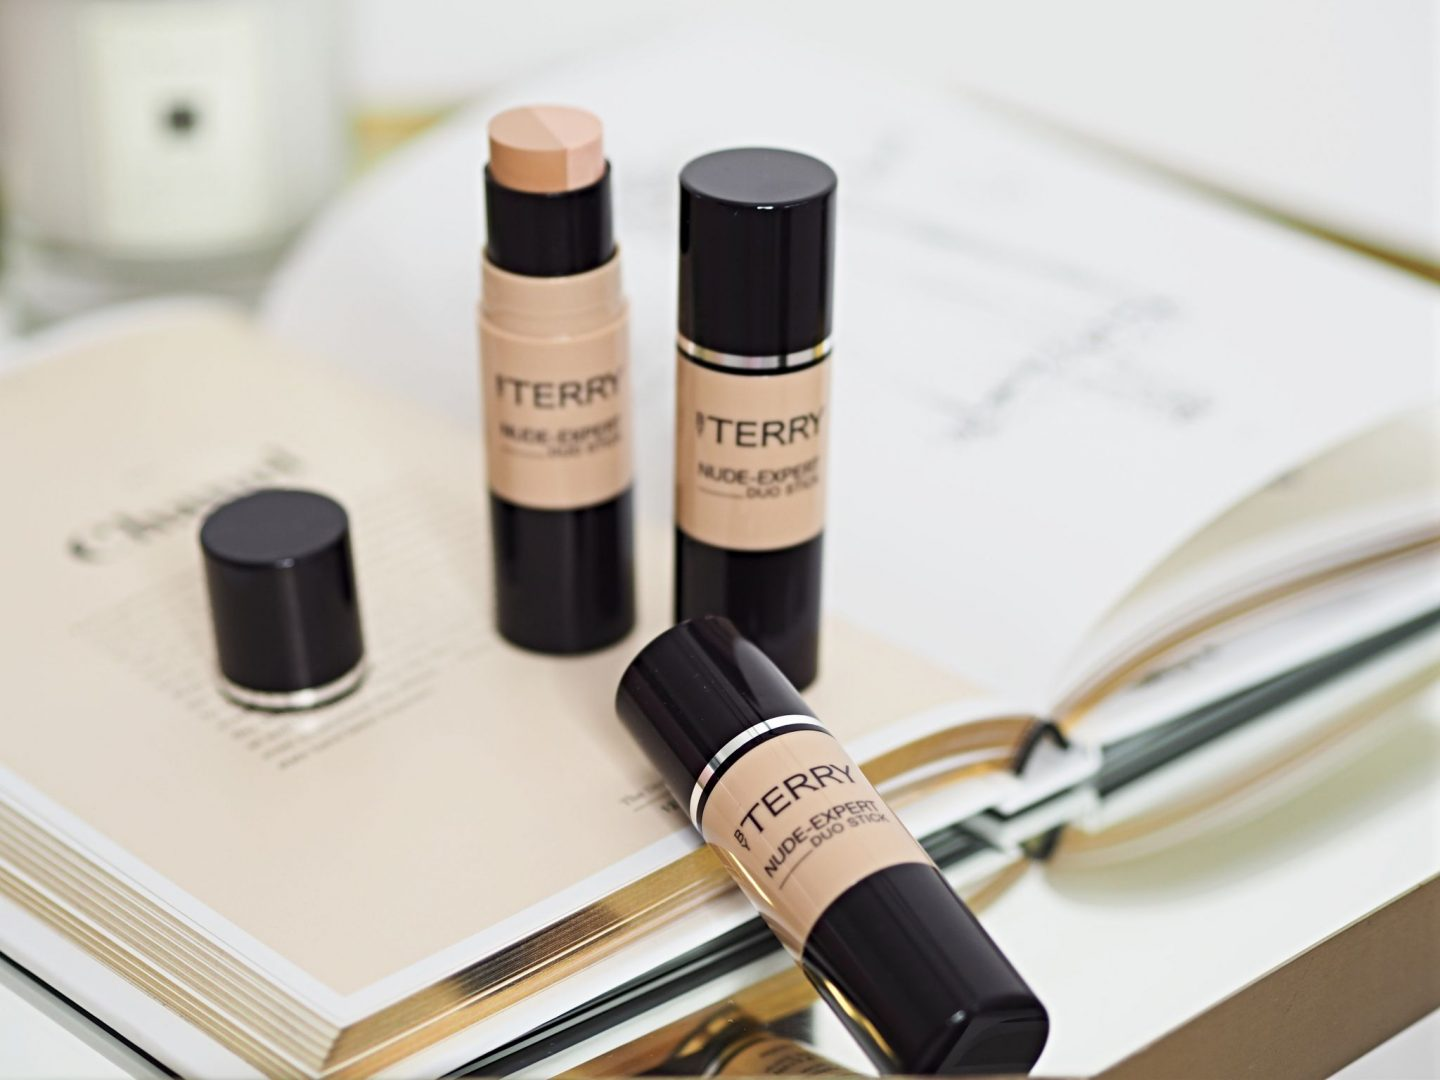 By Terry Nude-Expert Duo stick Foundation Review